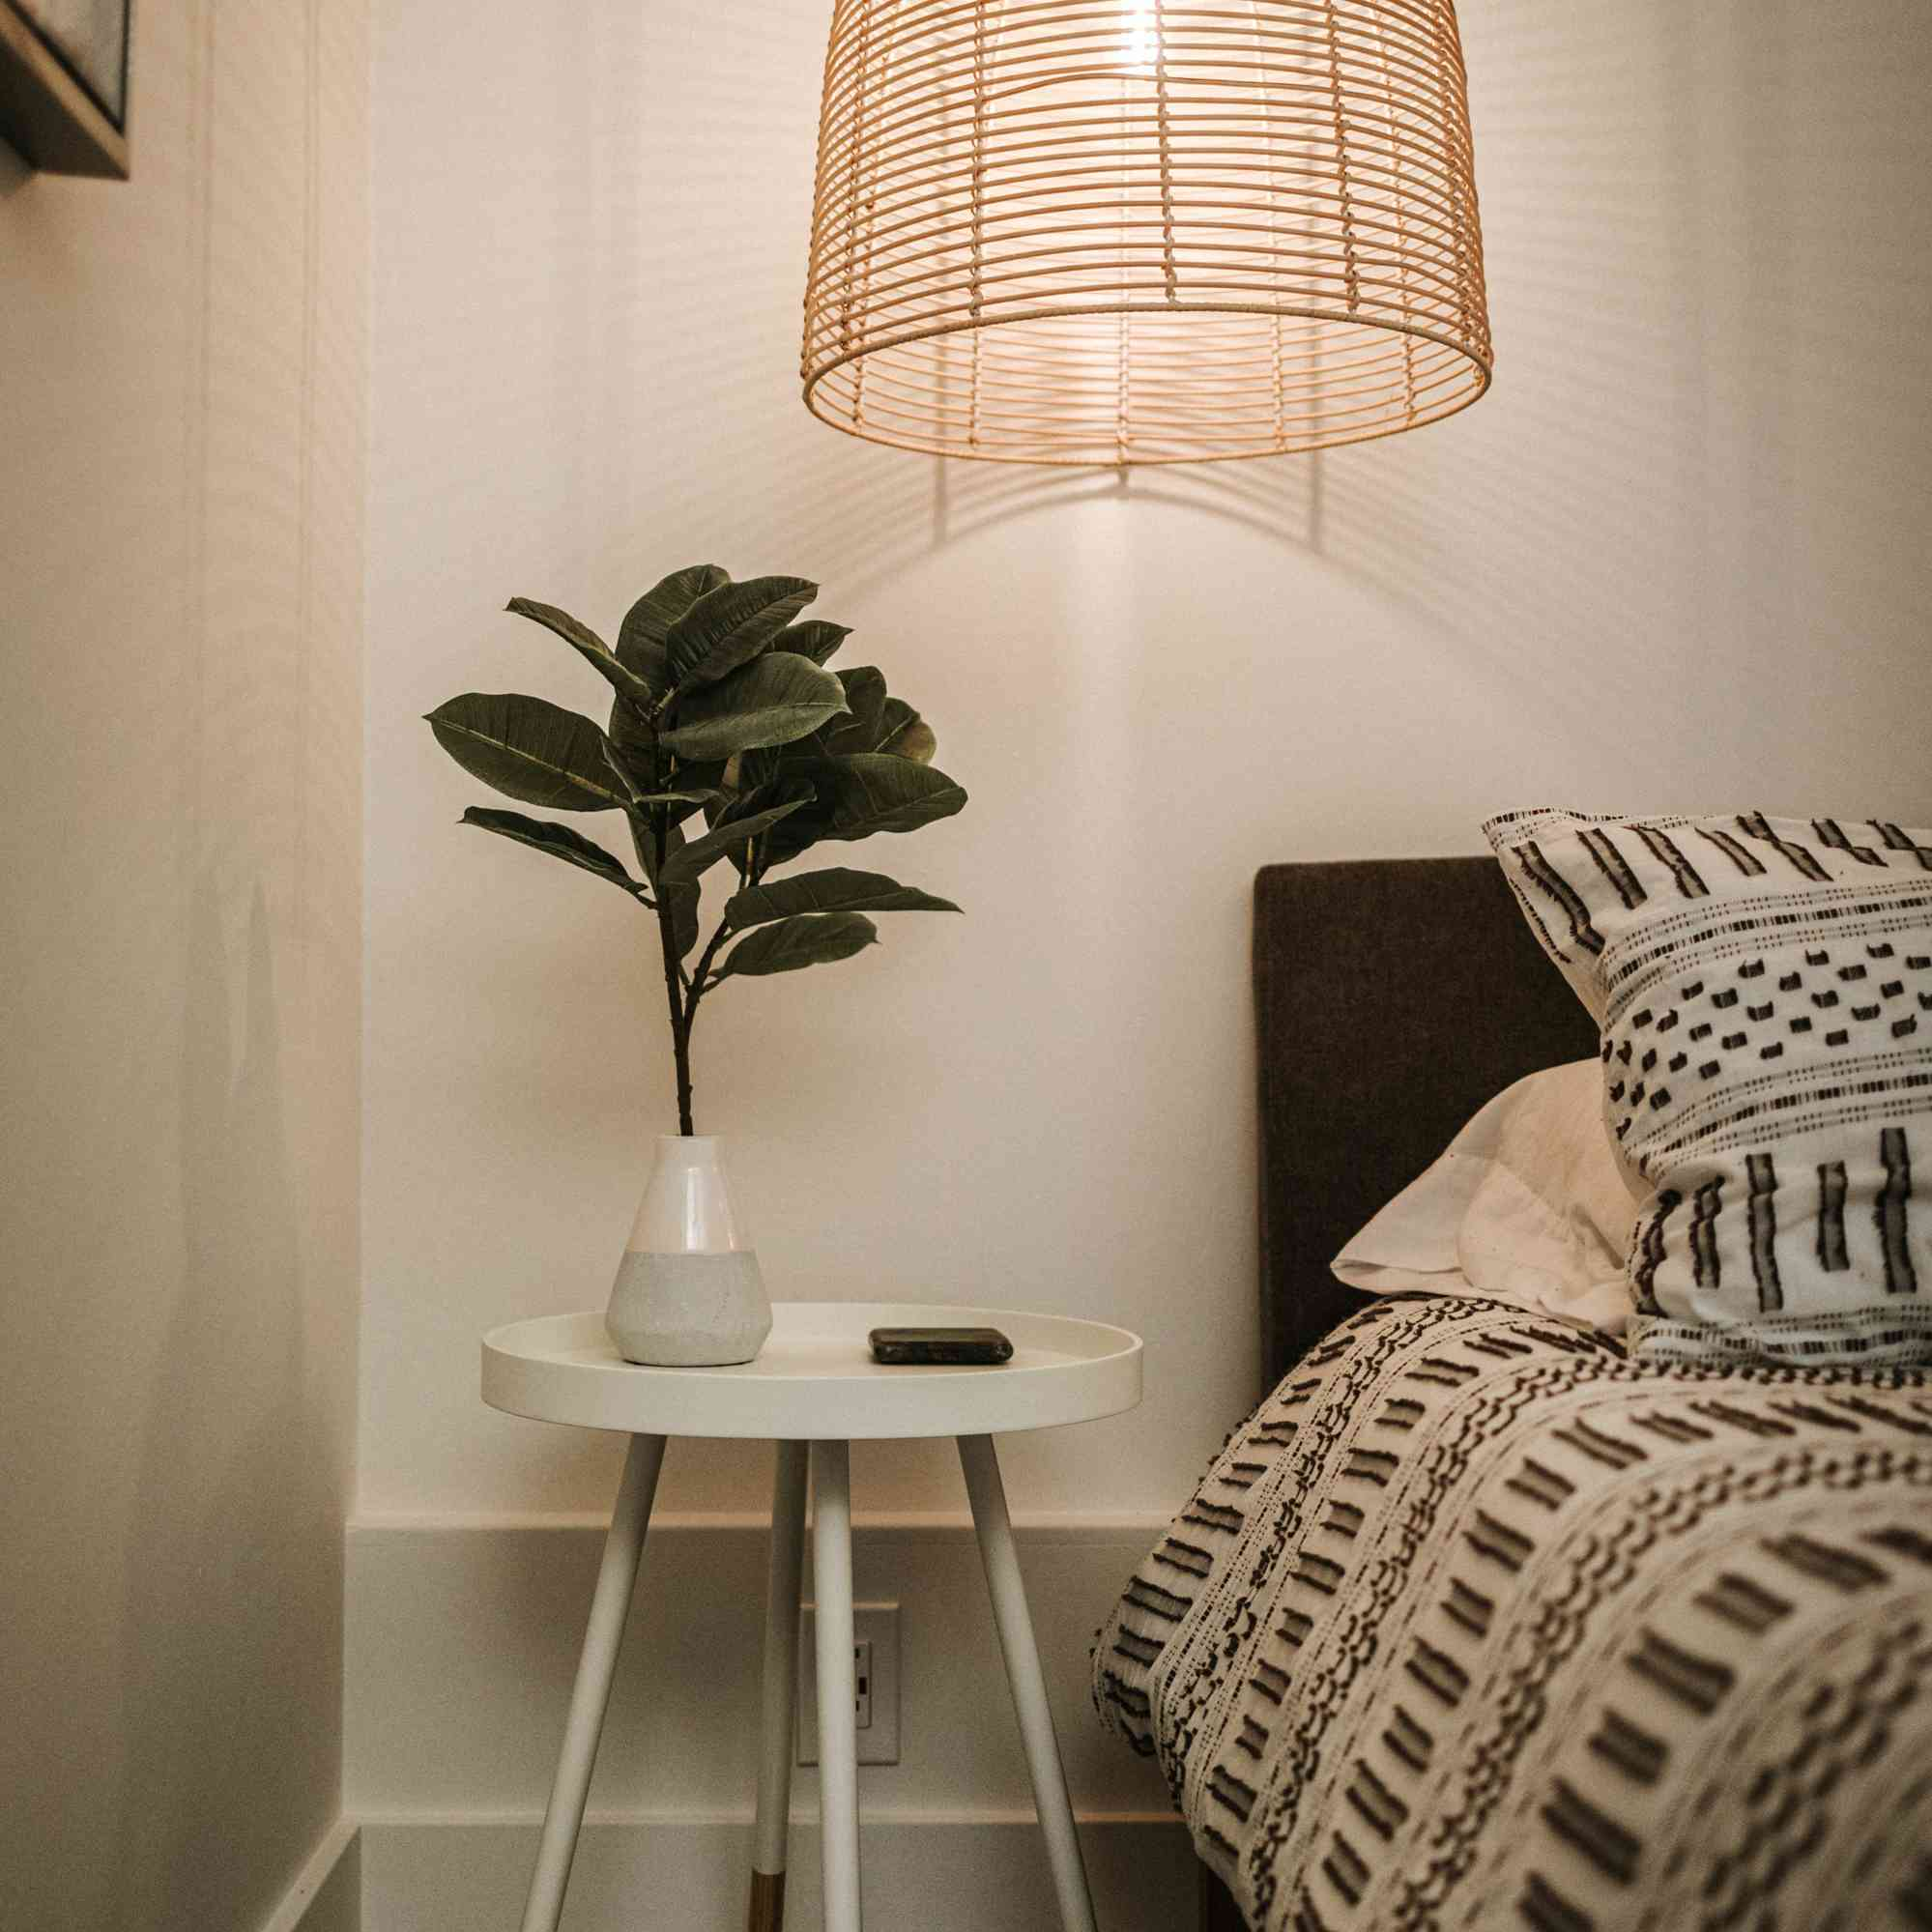 plant on a nightstand in a bedroom with a large light